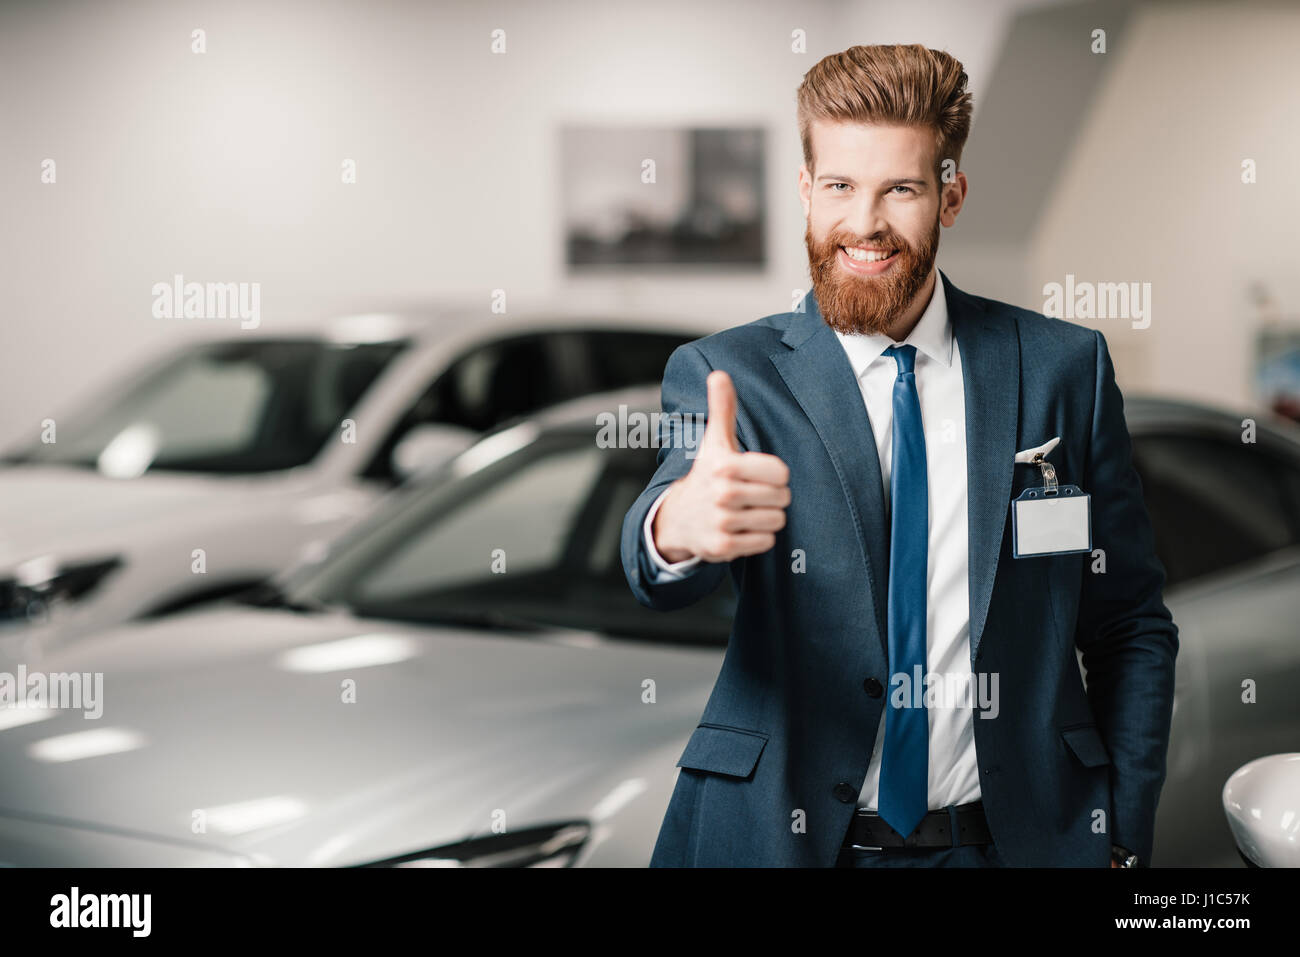 salesman in suit showing thumb up and looking at camera in dealership salon - Stock Image